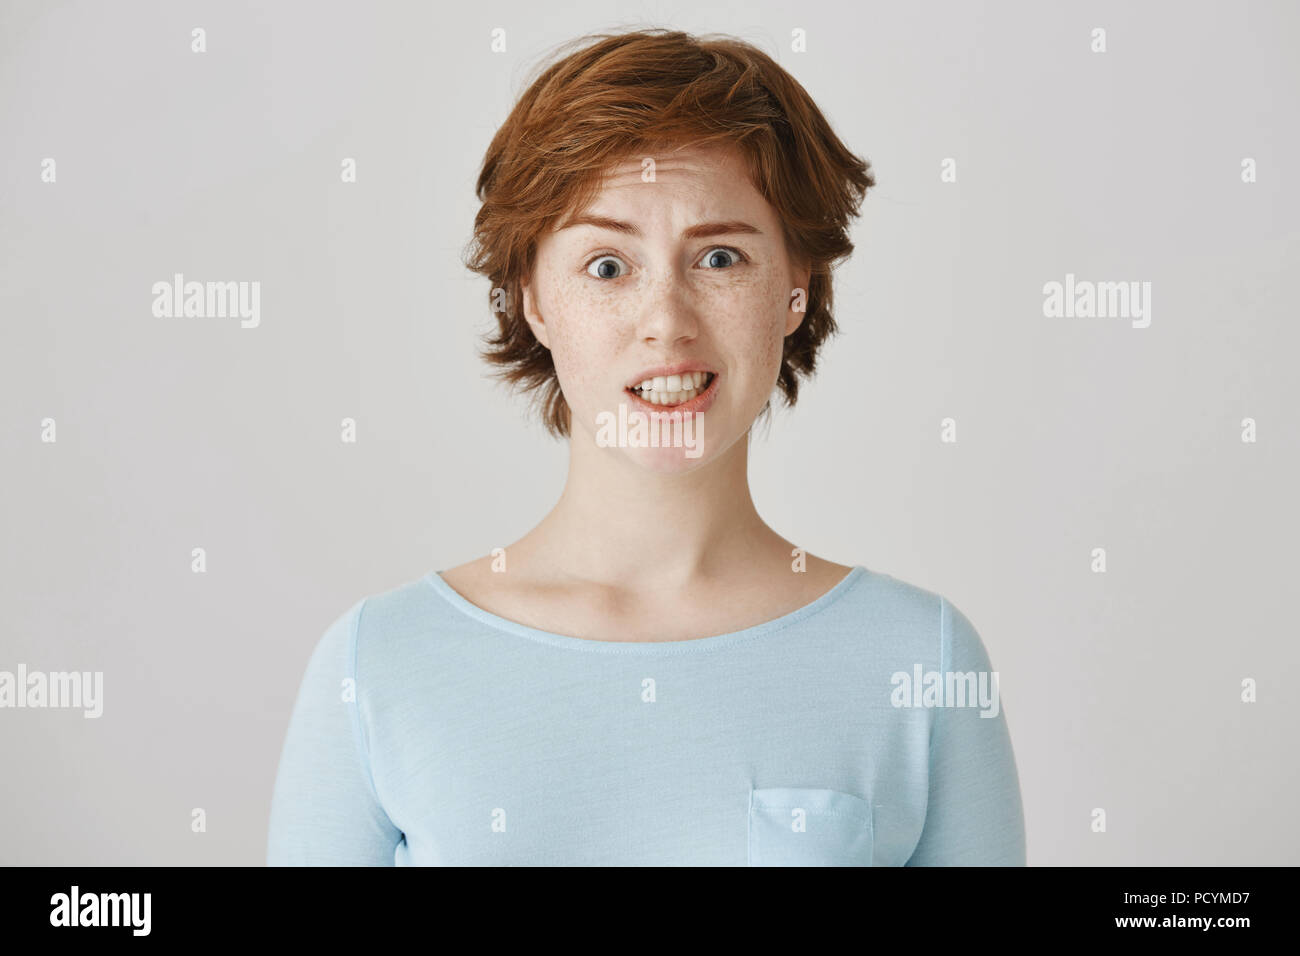 I am not sure it is good idea. Portrait of good-looking slender redhead woman with freckles grimacing and expressing hesitation and unwillingness to d - Stock Image